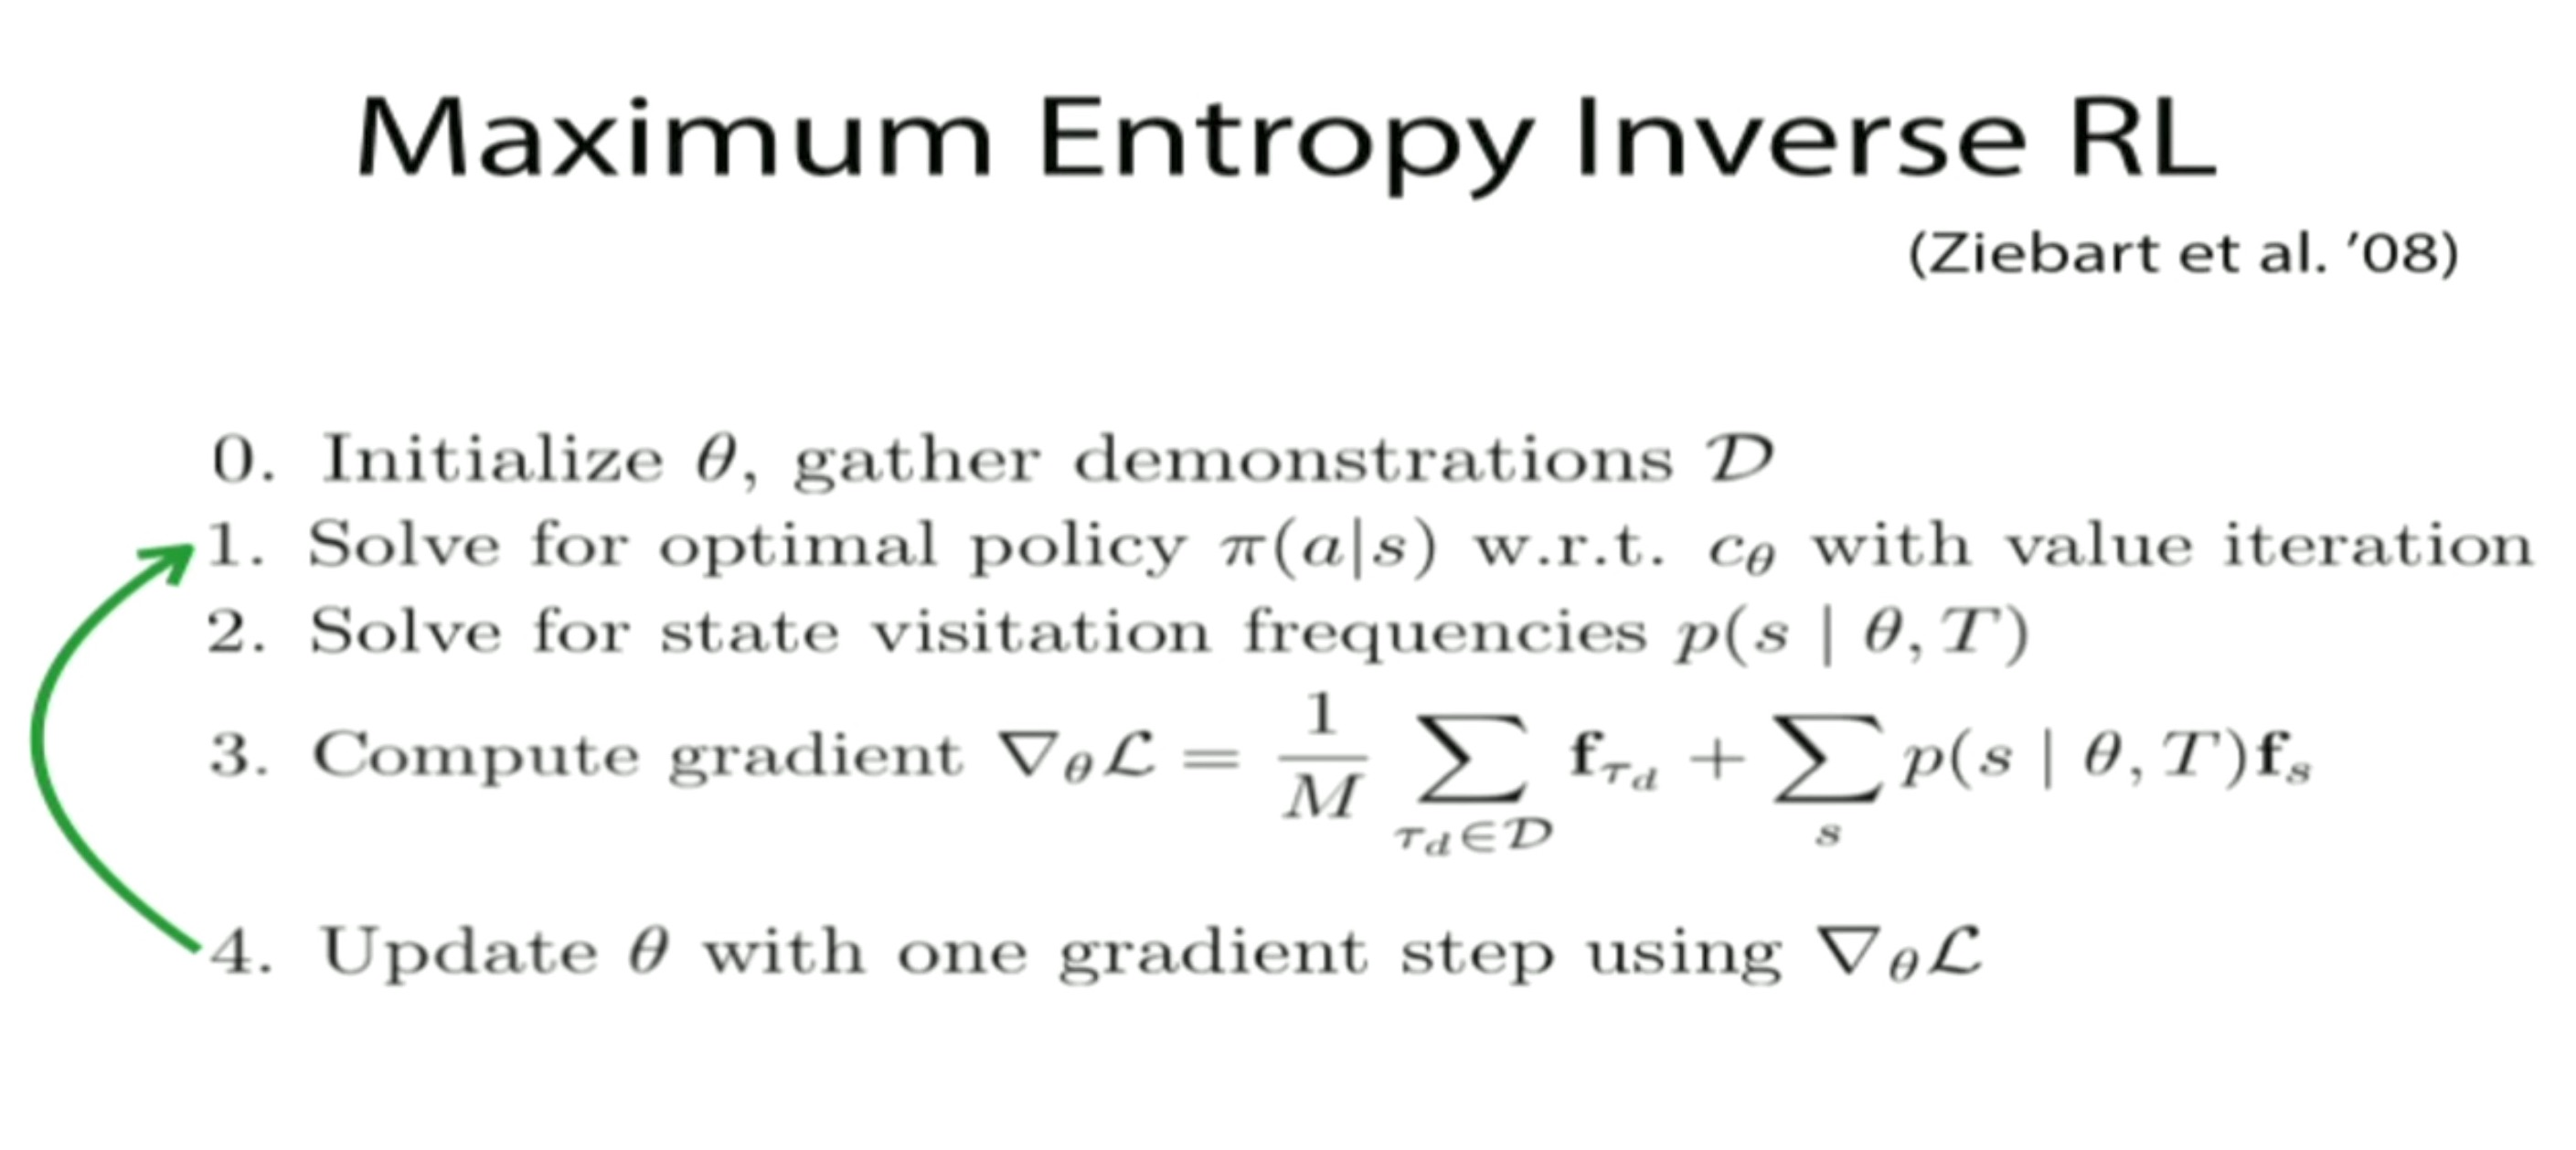 Where do we go from maximum entropy